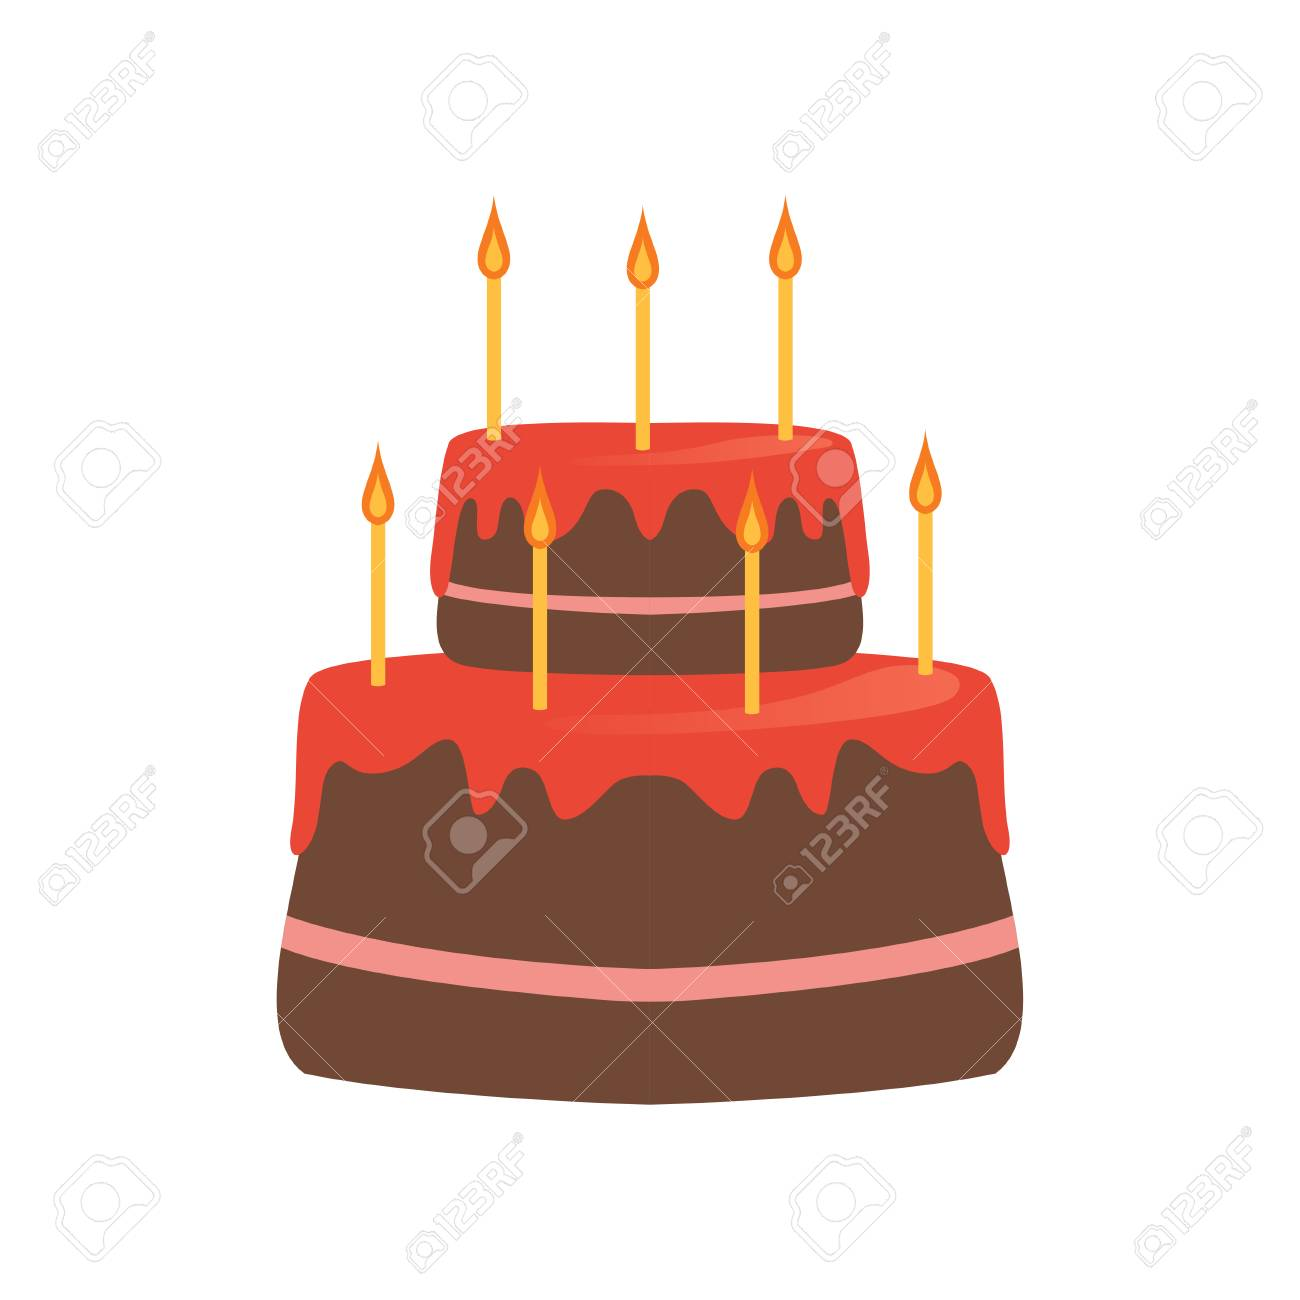 Two Tiered Cake With Red Glaze And Seven Burning Candles Tasty Dessert For Birthday